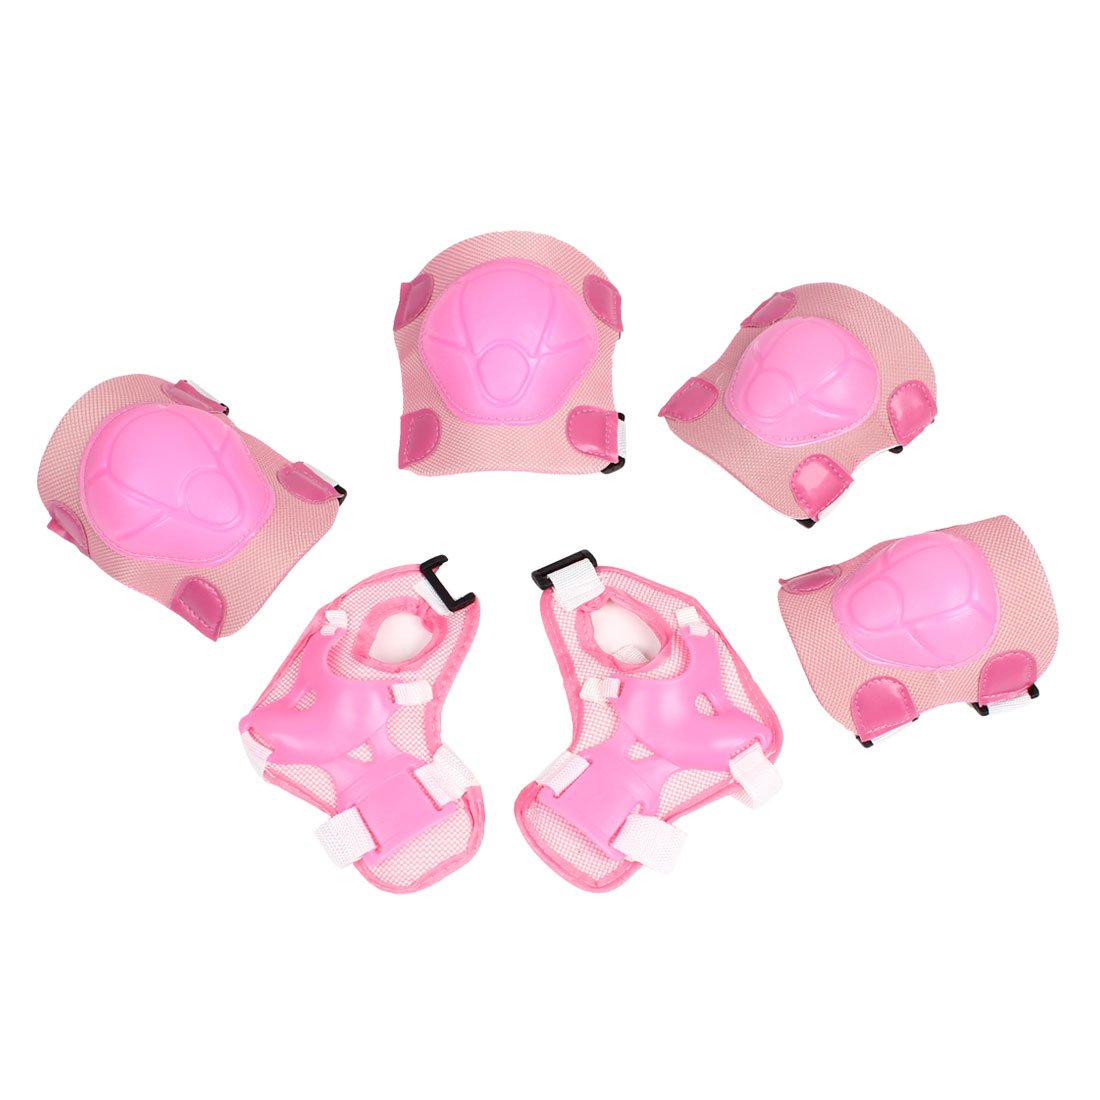 Pink Sports Protective Gear Knee Elbow Wrist Support Pad Set for Children